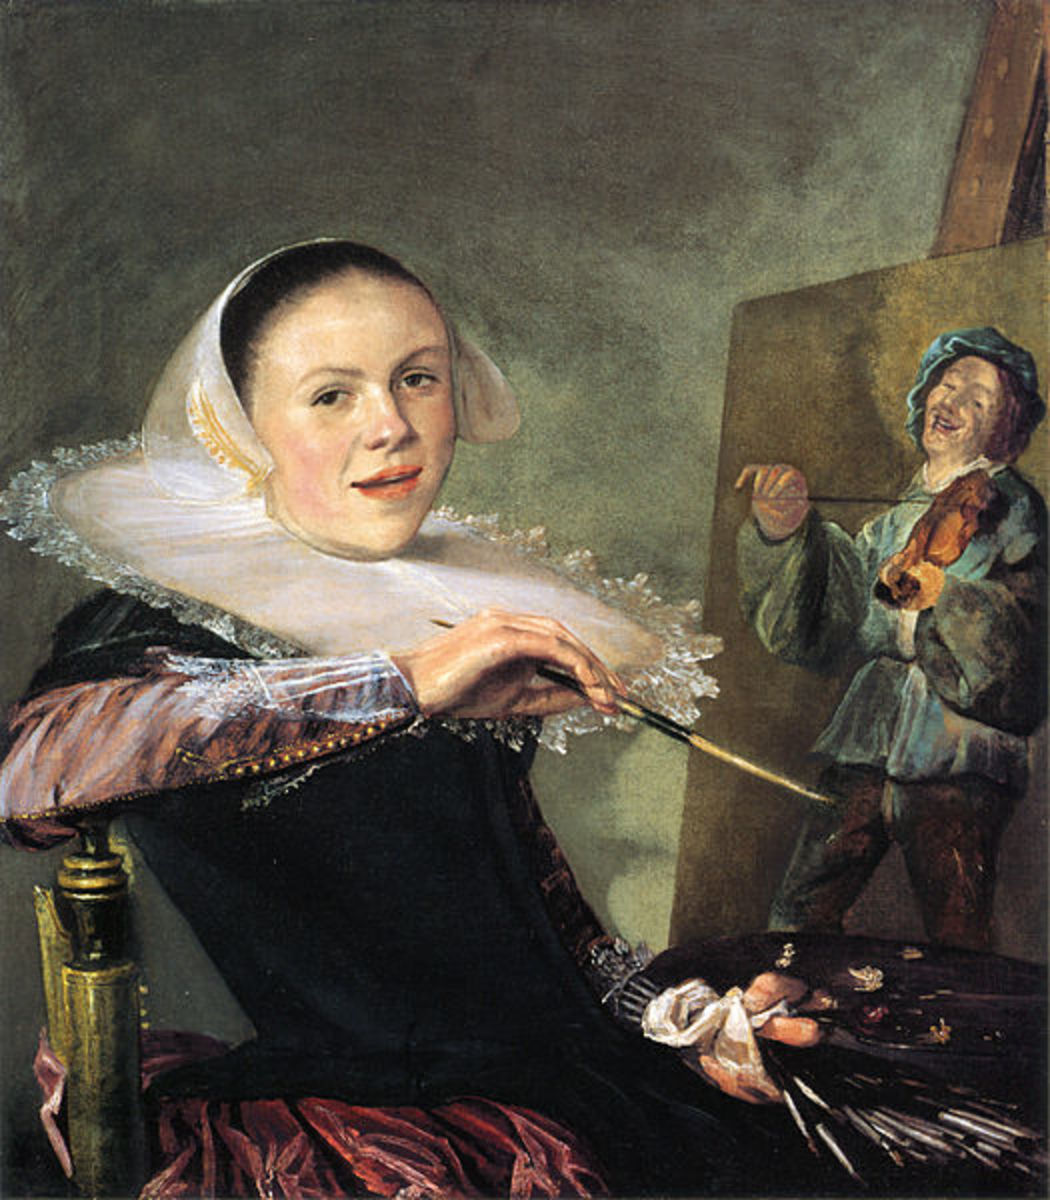 This Self-Portrait is in the public domain in the United States and those countries with a copyright term of life of the author plus 100 years or less.